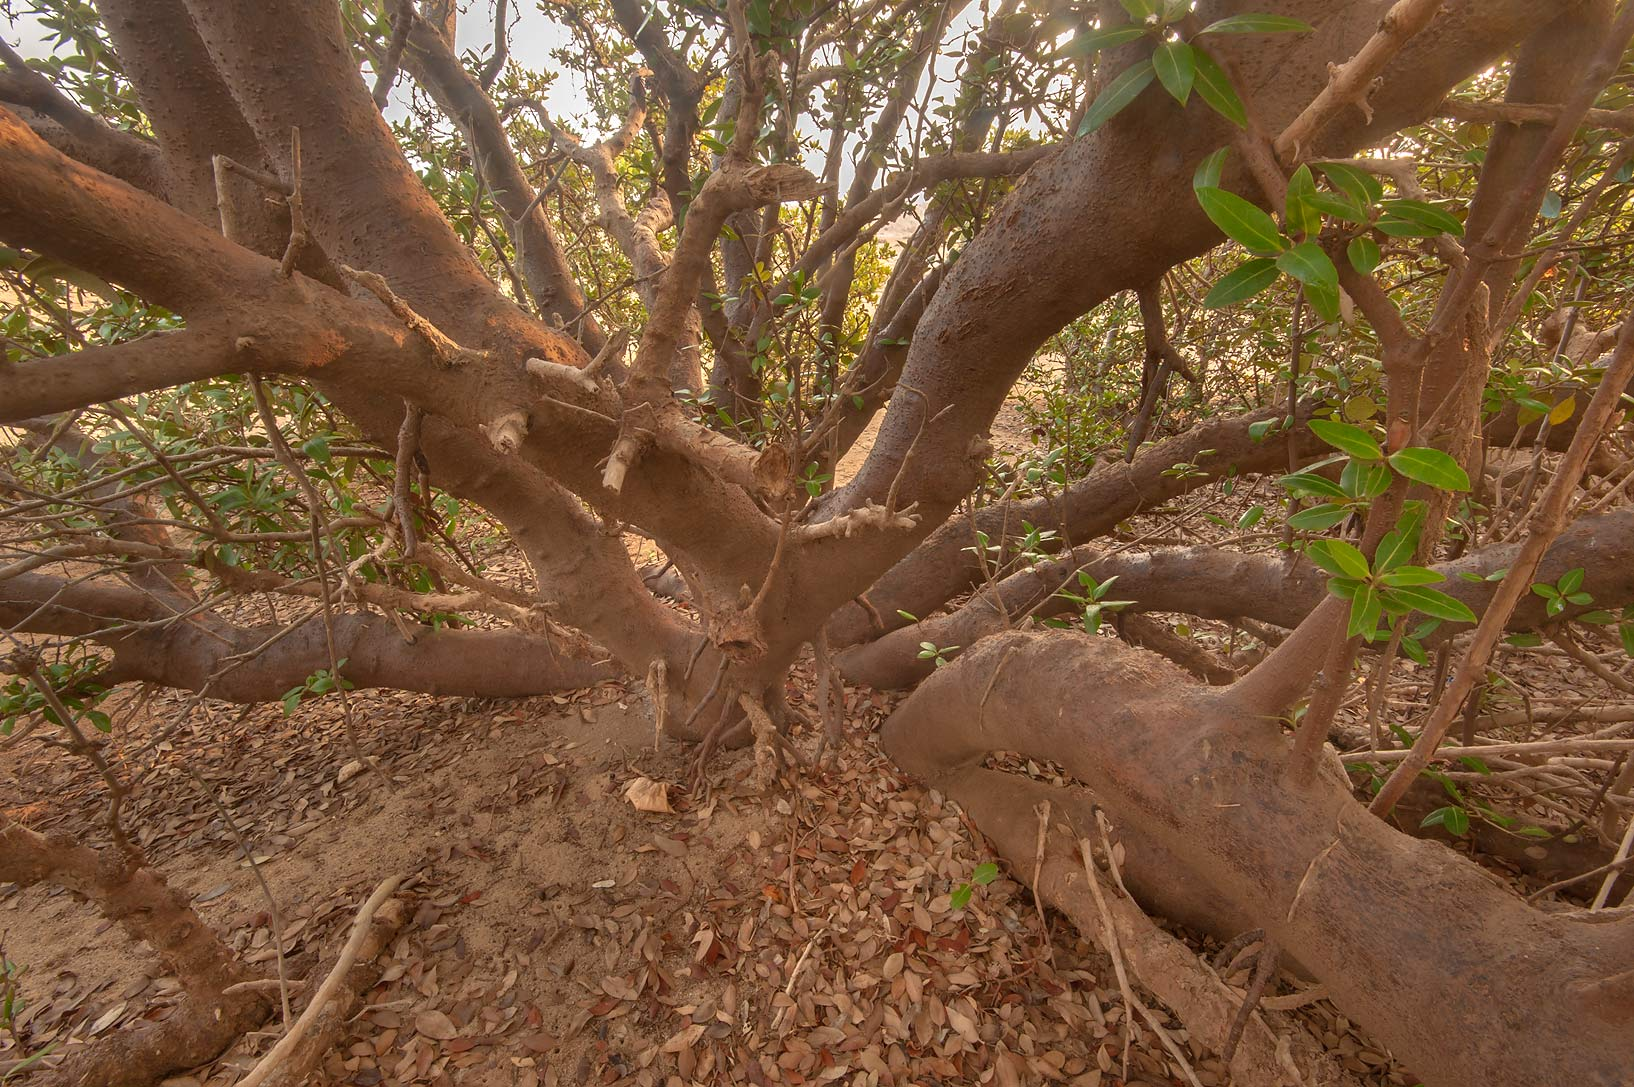 Tree trunks of mangrove (Avicennia marina) on...Jazirat Bin Ghanim). Al Khor, Qatar